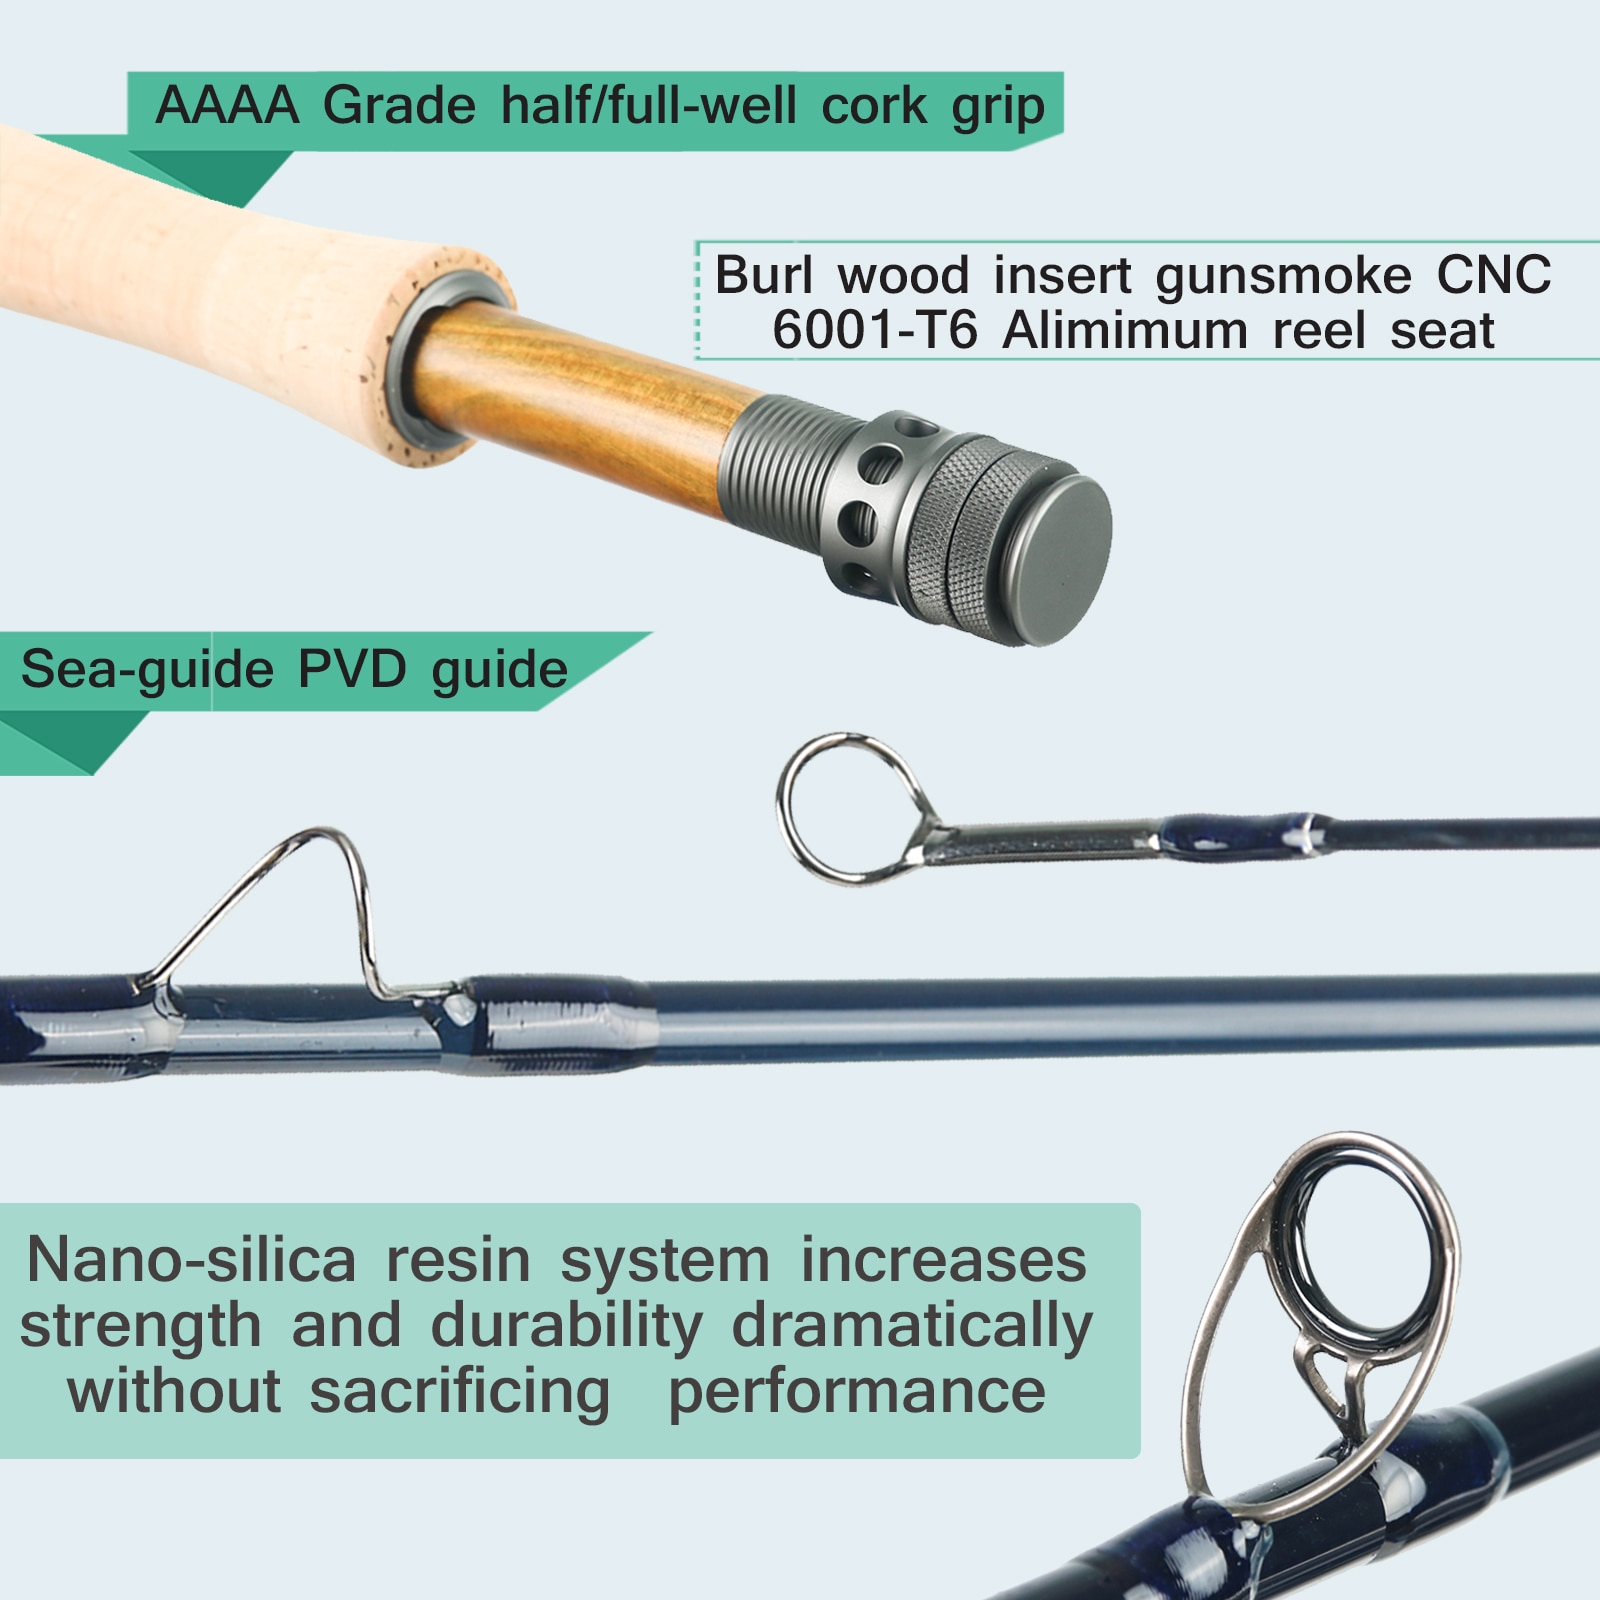 Maximumcatch Nano Fly Fishing Rod IM12 40T+46T Toray Carbon Fast Action Super Light with Cordura Tube 3/4/5/6/7/8WT 8'4''/9' enlarge